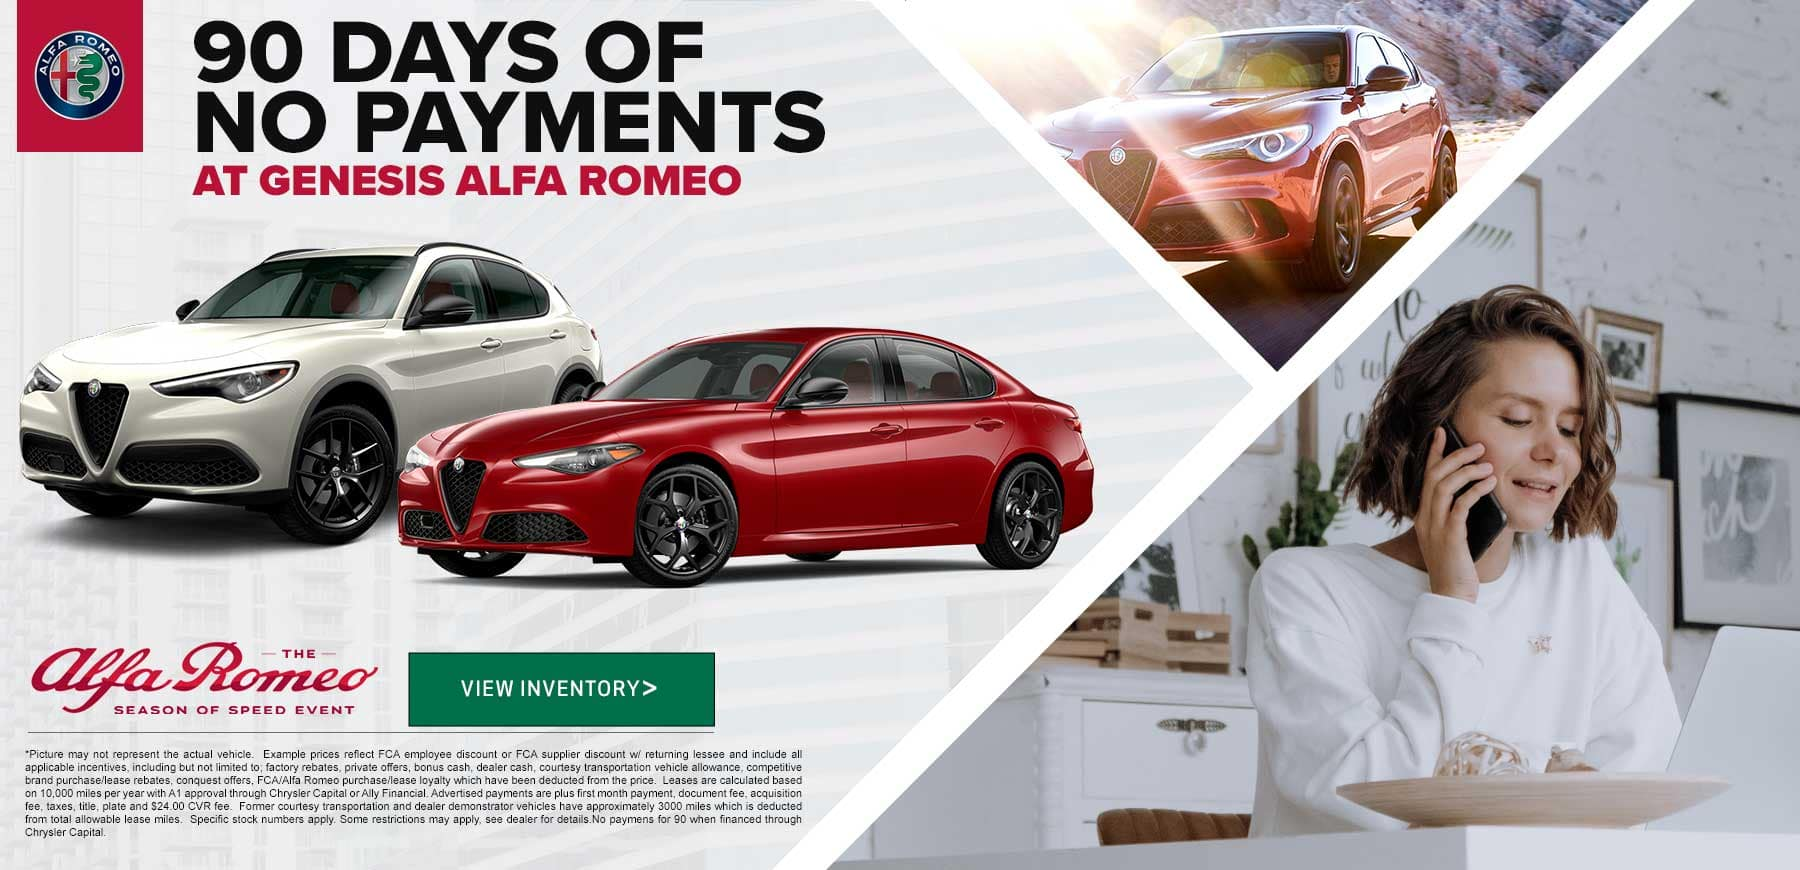 No Payments for 90 Days at Genesis Alfa Romeo FIAT